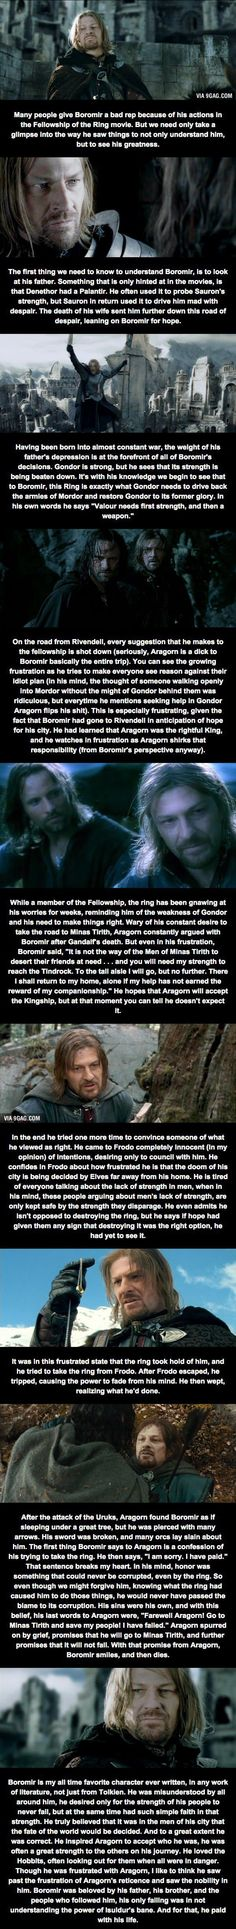 talk about a fatal flaw... however, the trilogy does leave out some very important scenes, which makes boromir look like a dickbag. one has to view the director's cut version in order to truly see boromir's context.